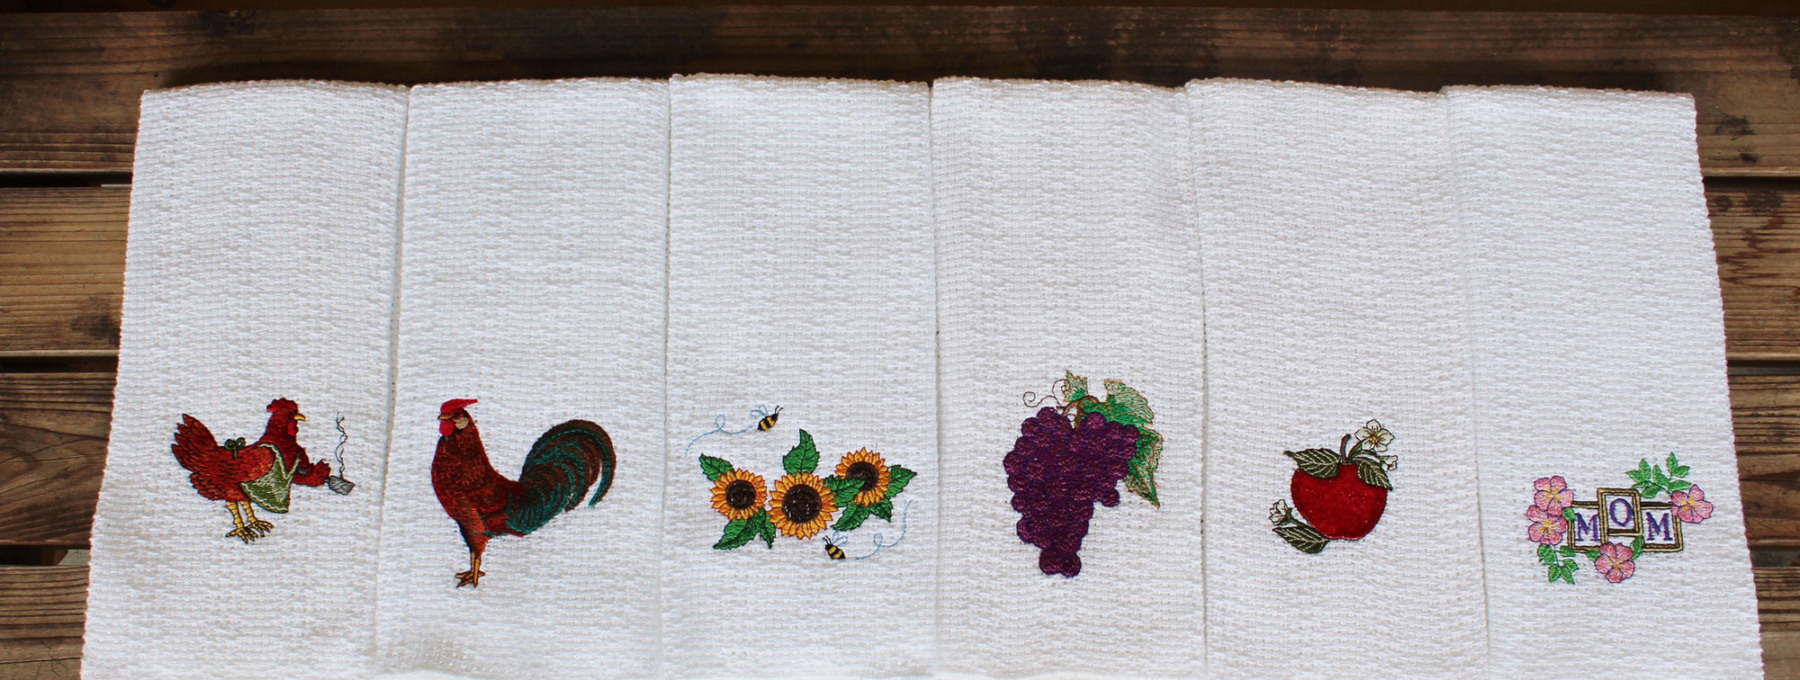 embroideredkitchentowels